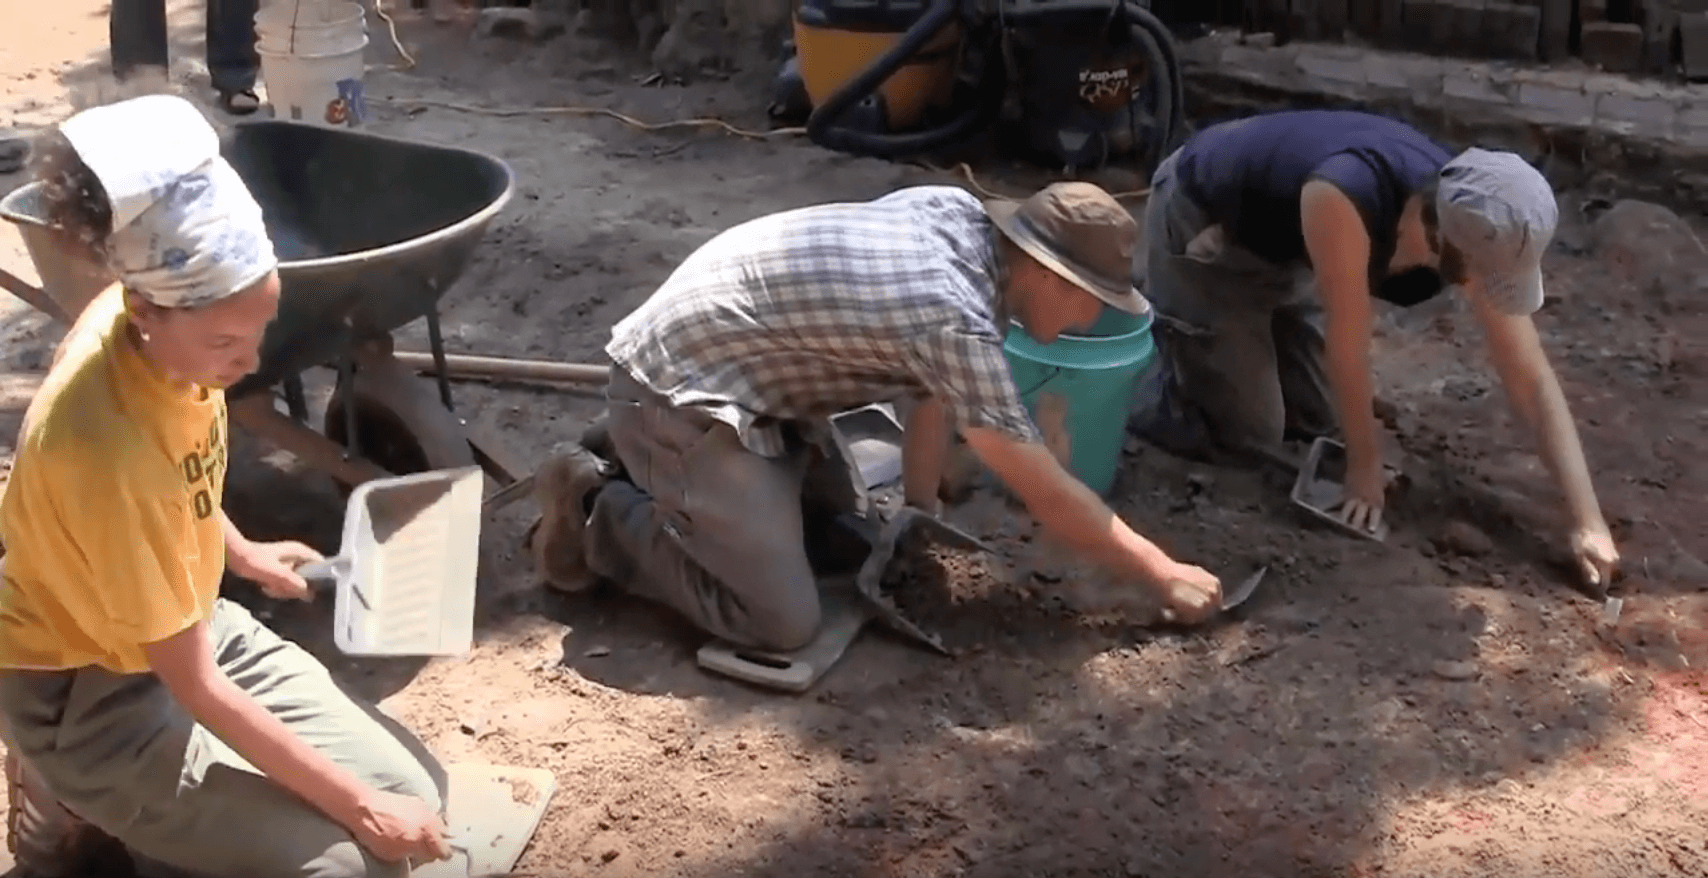 Three UNC archaeologists kneeling down with their tools in the dirt.